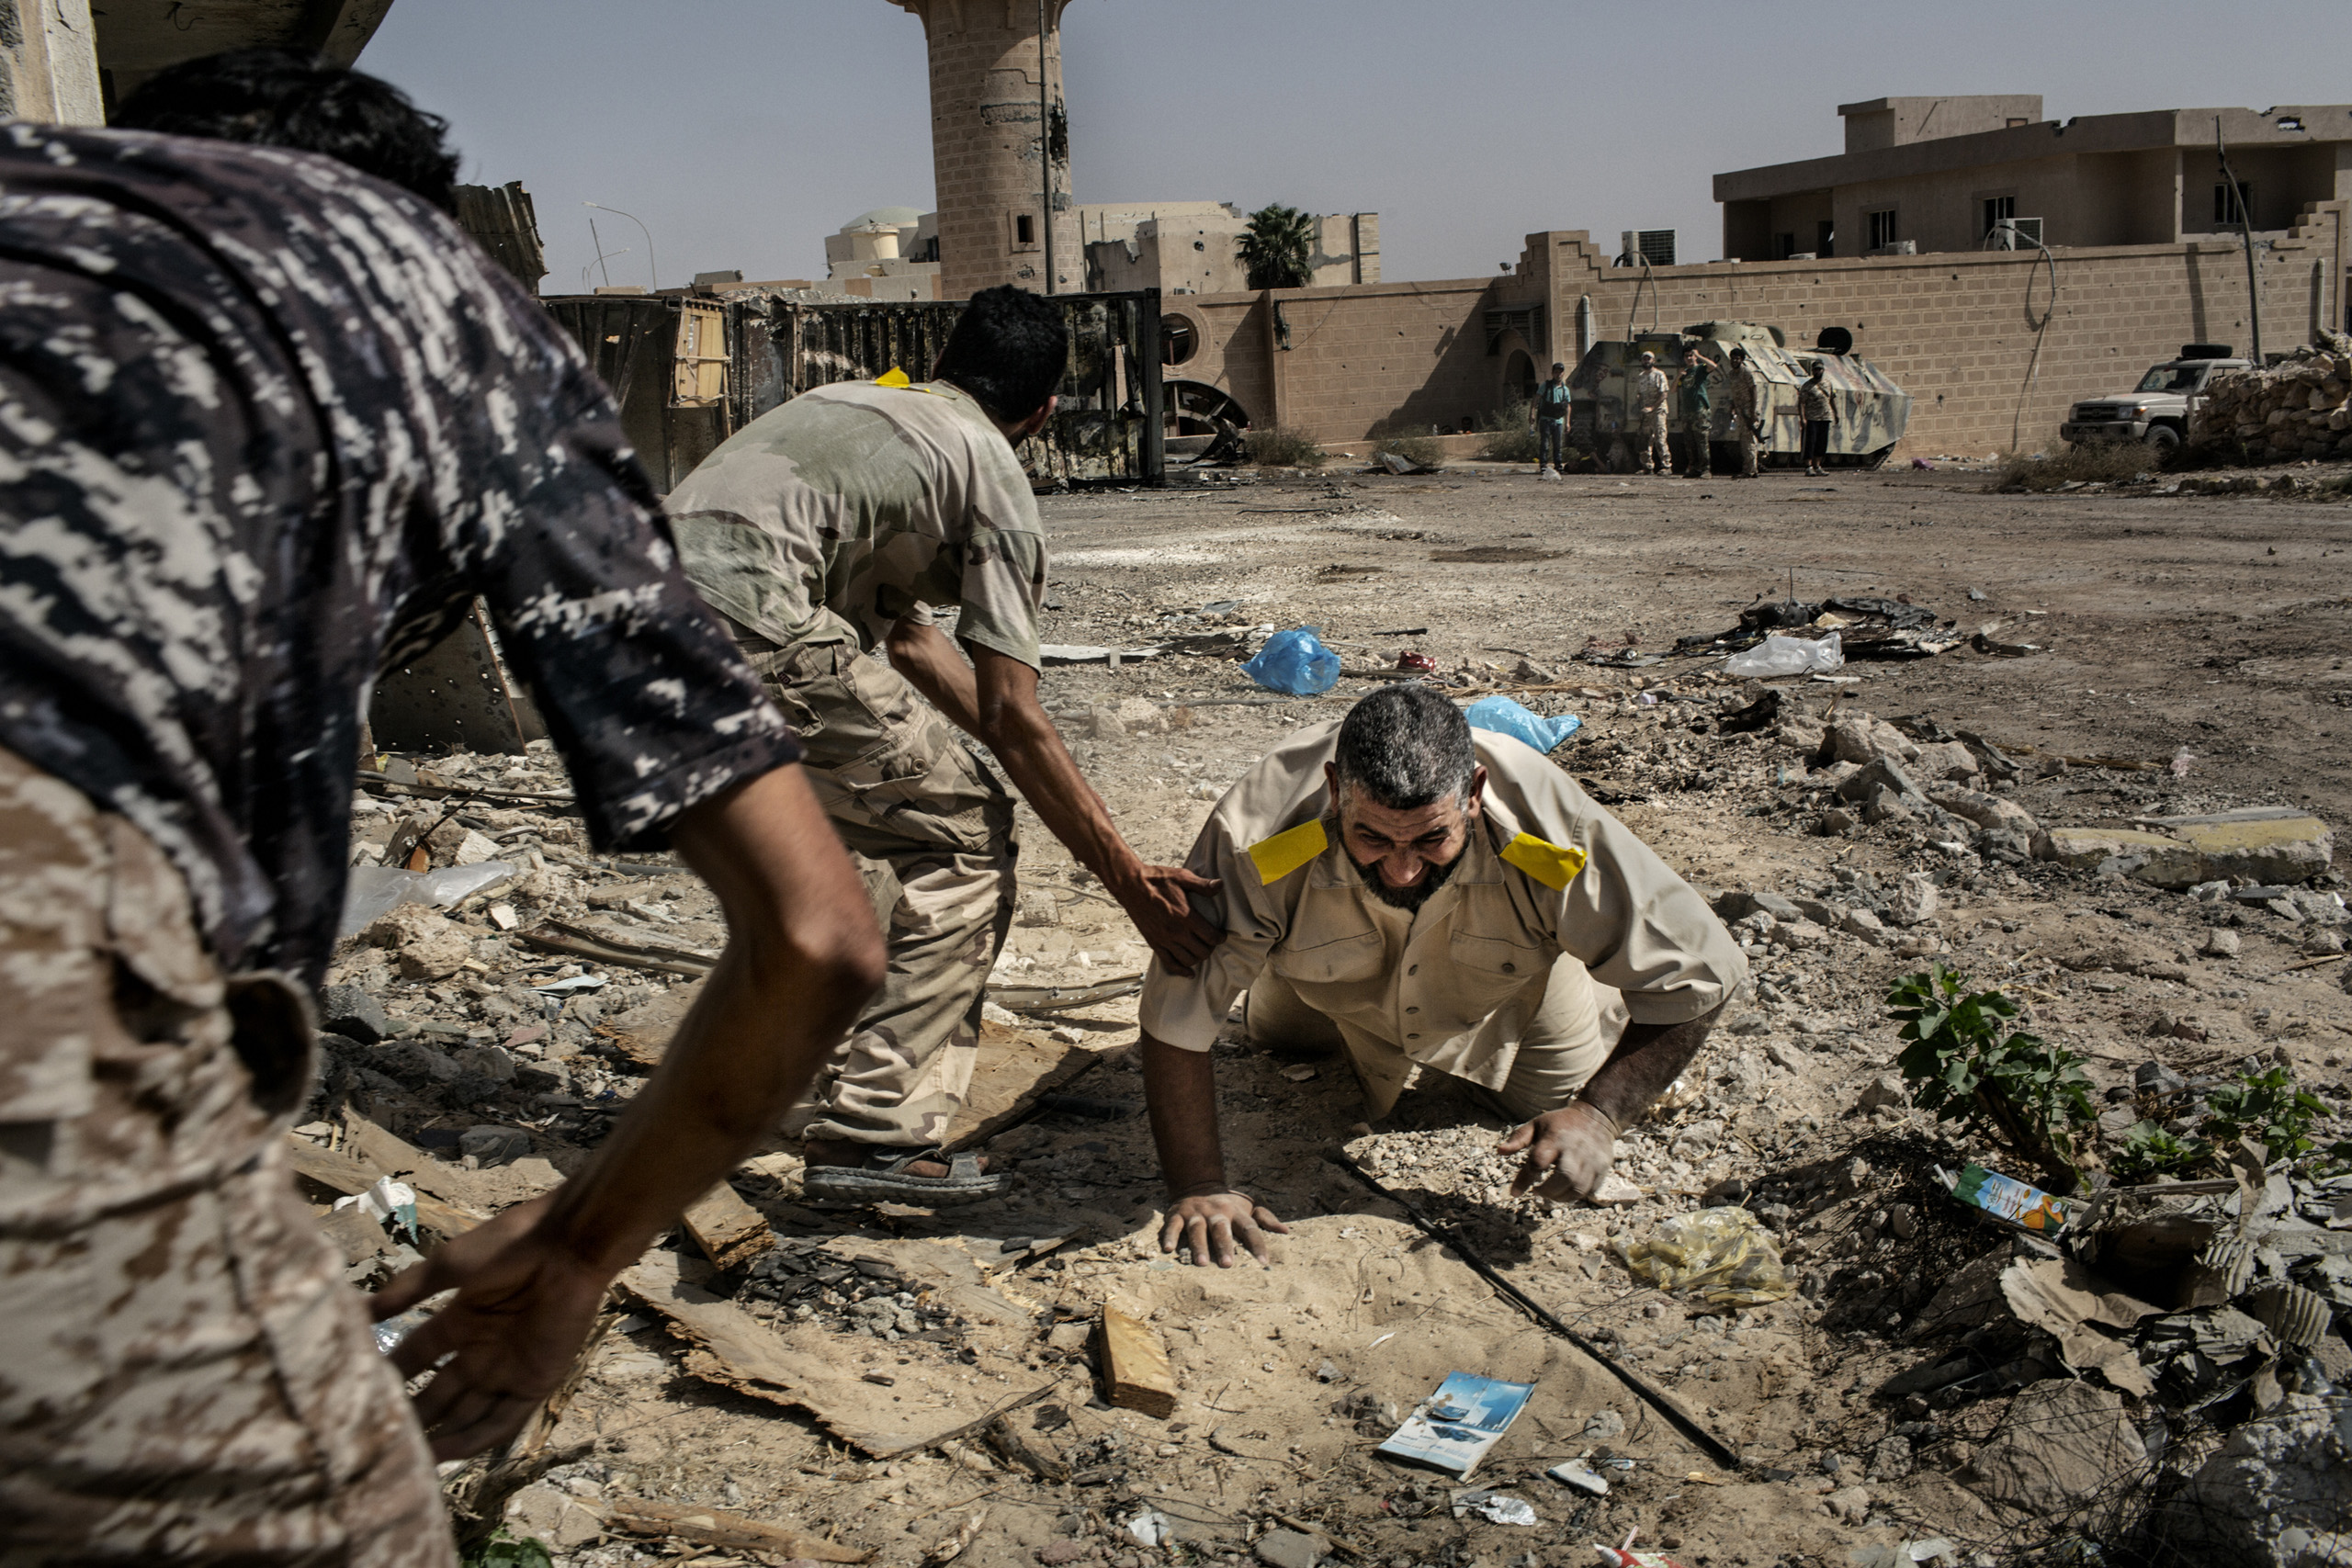 A fighter loyal to Libya's Government of National Accord is helped by two  comrades after he was shot in the leg by an ISIS (Islamic State) sniper on the western frontline, Sirte, Oct. 2, 2016.